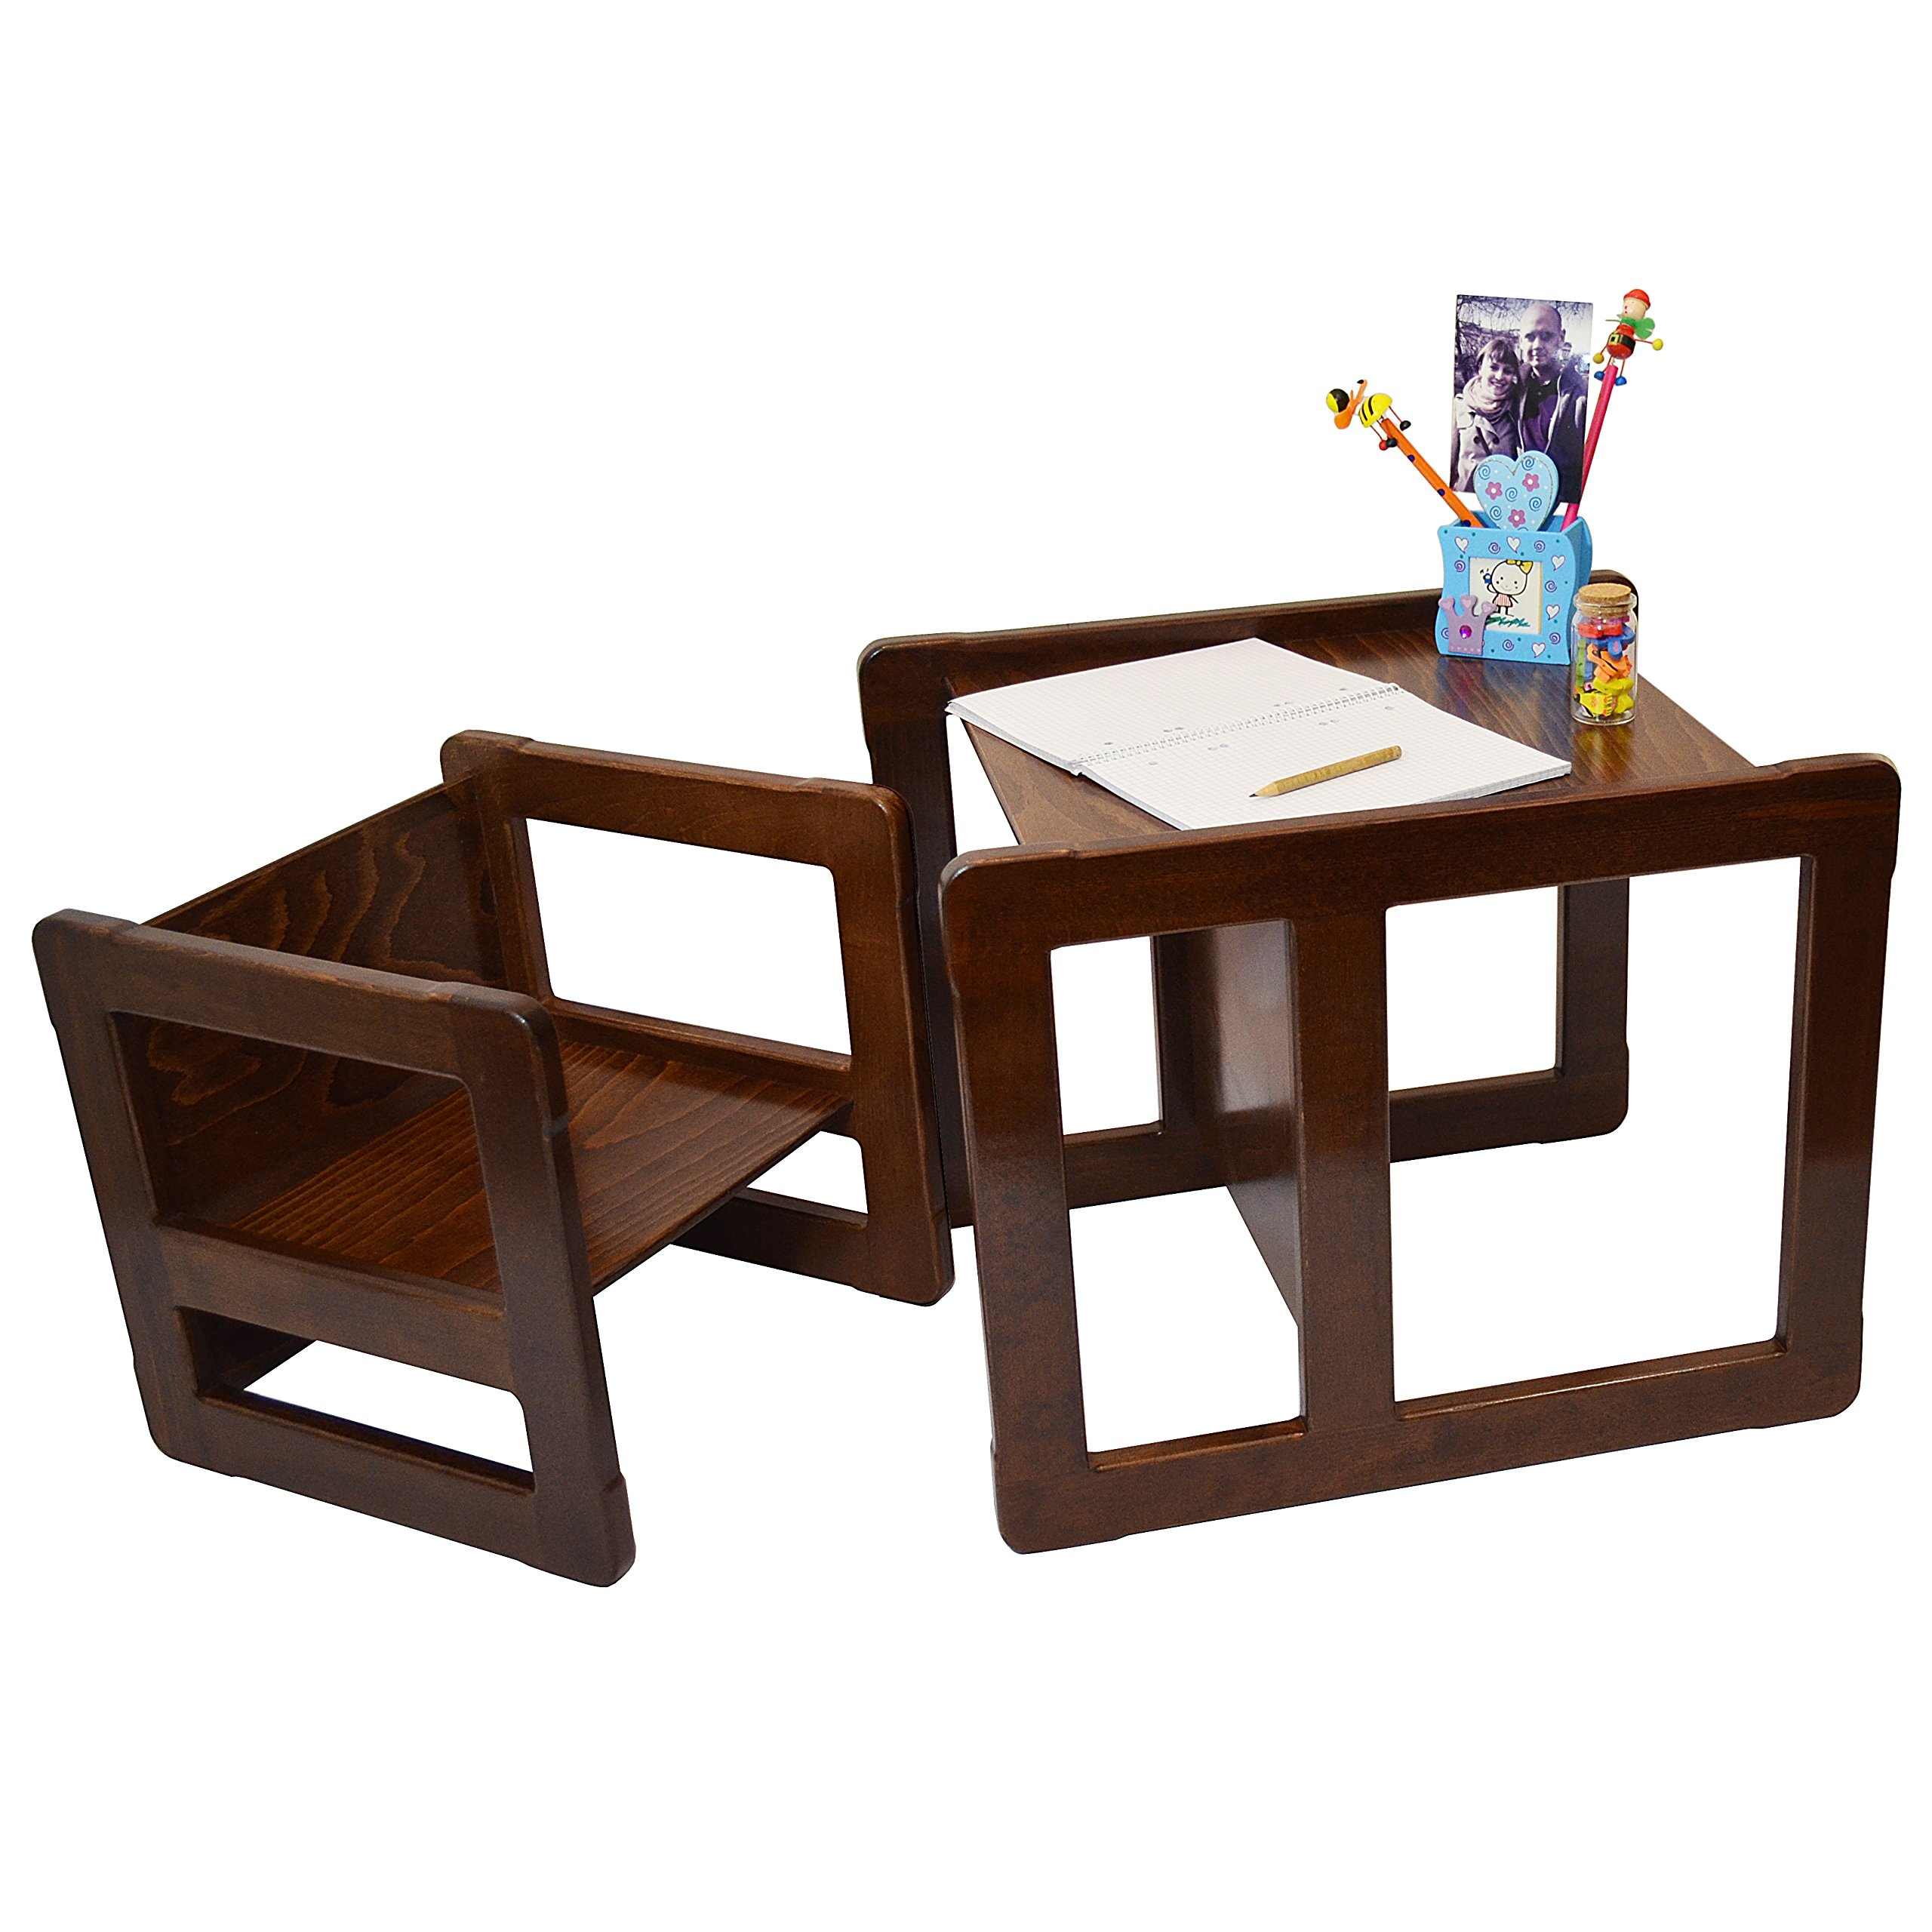 3 in 1 Childrens Multifunctional Furniture Set of 2, One Small Chair or Table and One Large Chair or Table Beech Wood, Dark Stained